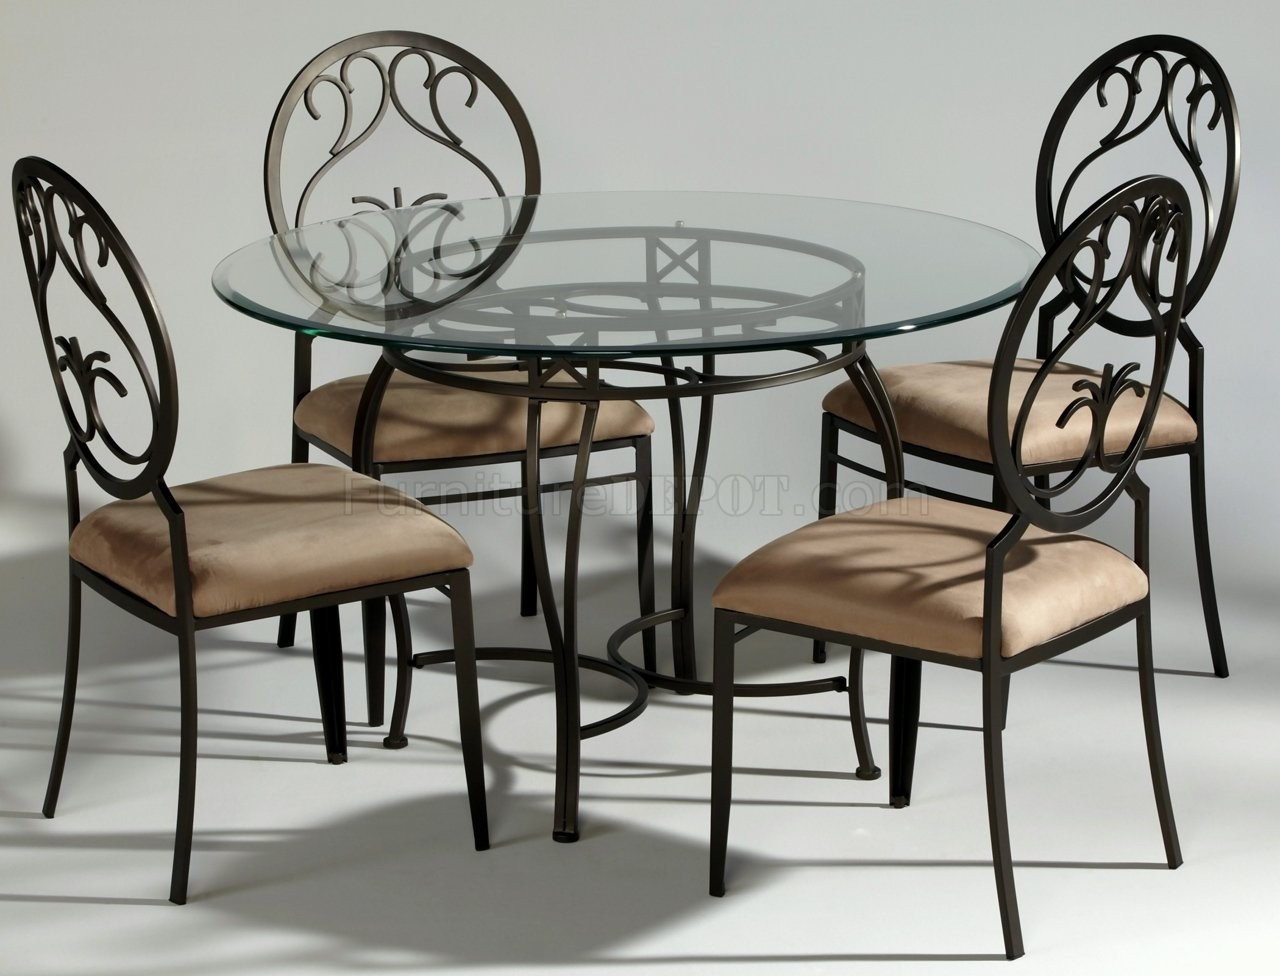 Wrought iron dining chairs & Glass Top Wrought Iron Dining Table - Foter